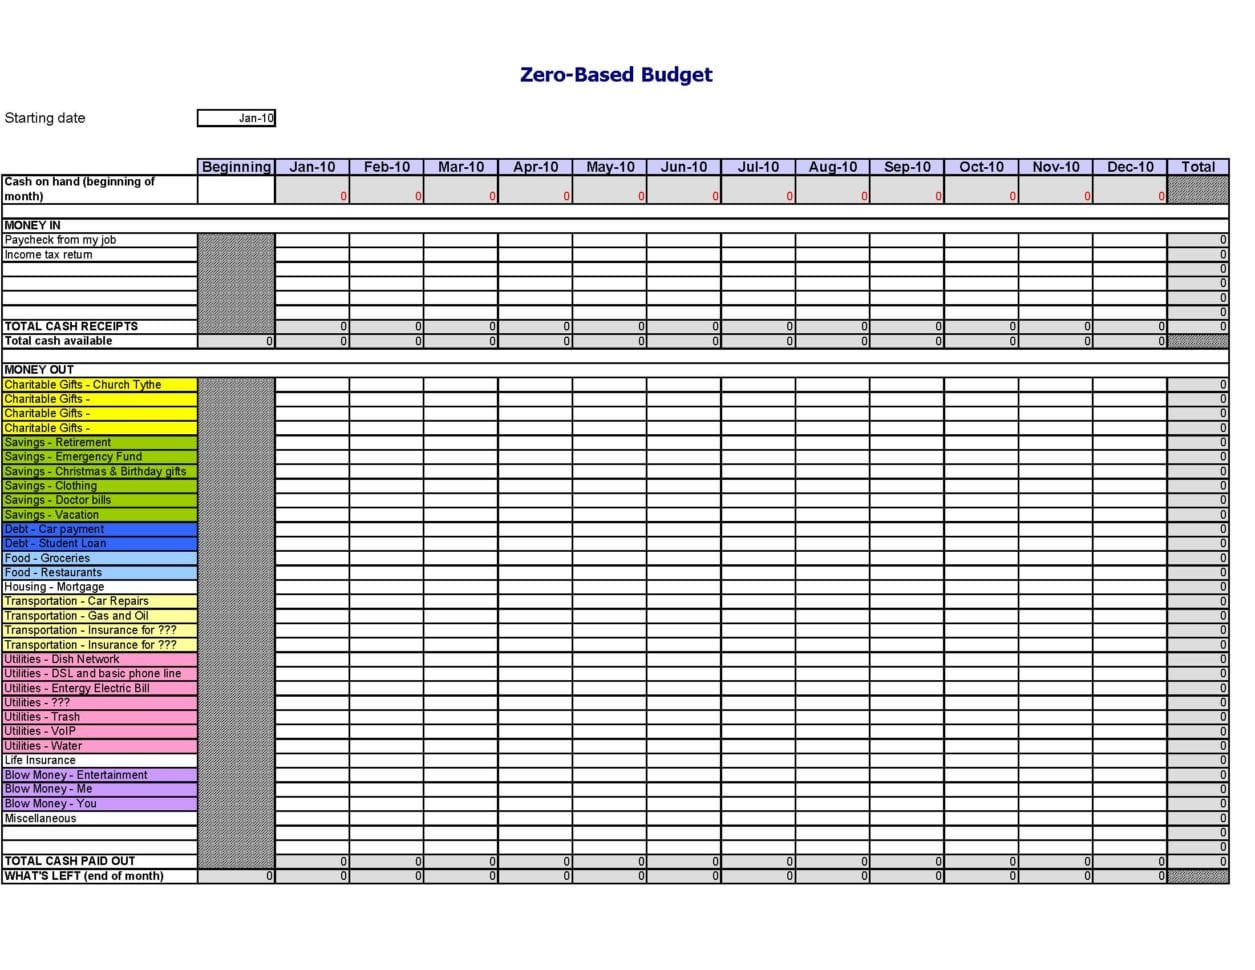 Project Expense Tracking Spreadsheet Excel Expense Report Template Free Printable Expense Tracking Spreadsheet For Small Business Personal Expense Tracking Spreadsheet Template Blank Expense Report Template Expense Tracking Spreadsheet For Tax Purposes Small Business Expense Report Template  Excel Expense Tracker Template Expense Tracking Spreadsheet Template Spreadsheet Templates for Busines